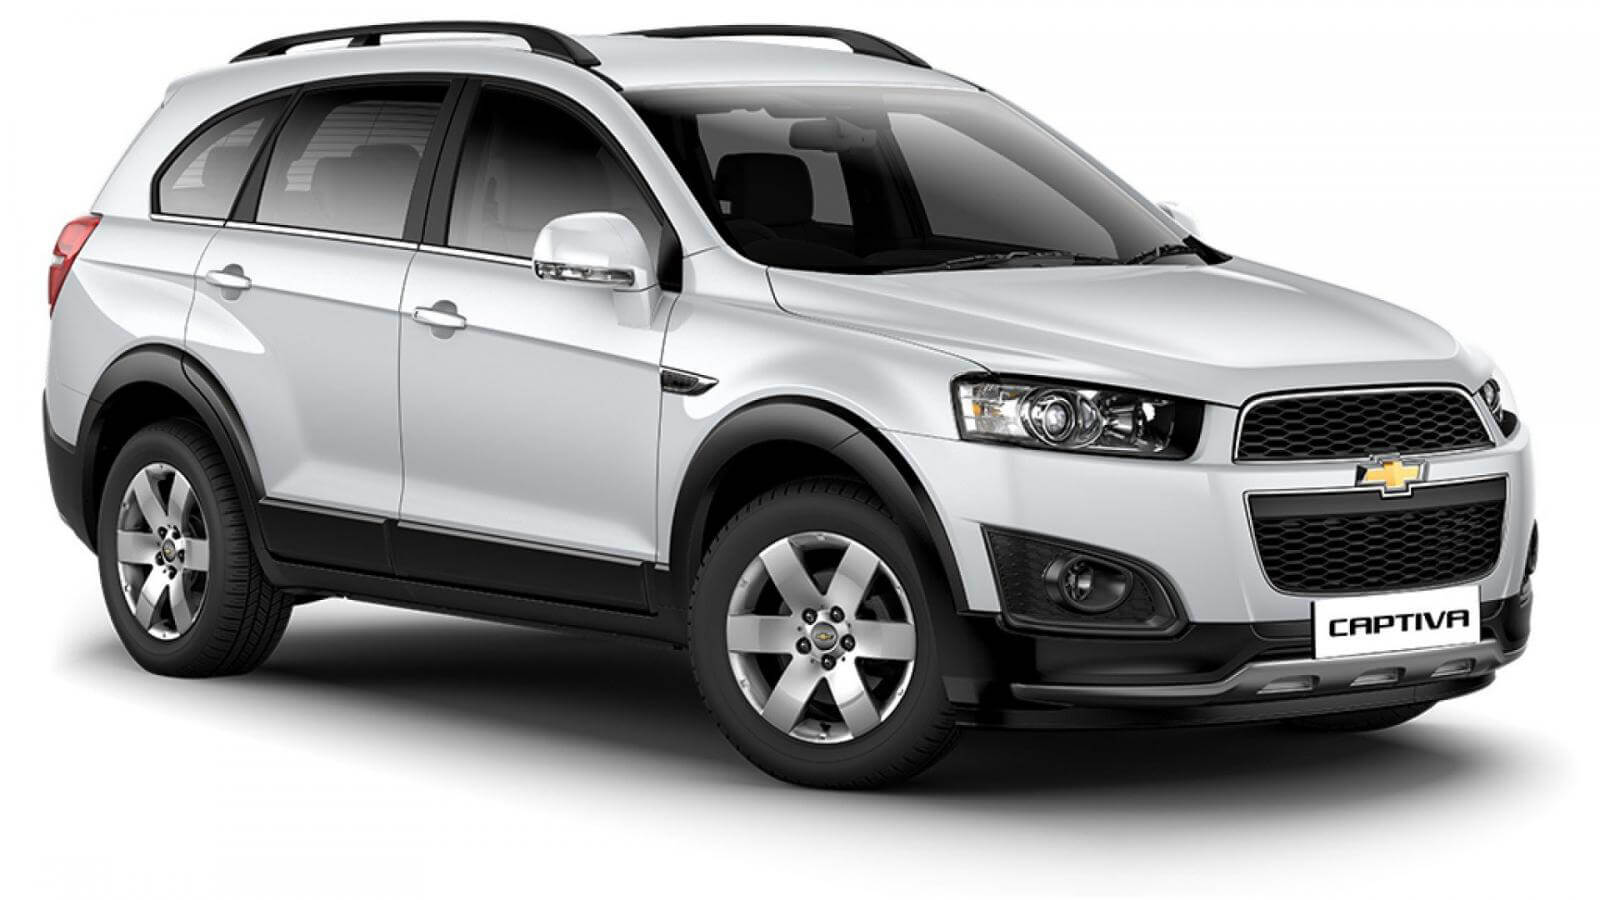 Chevrolet Captiva Wallpapers, Free Download